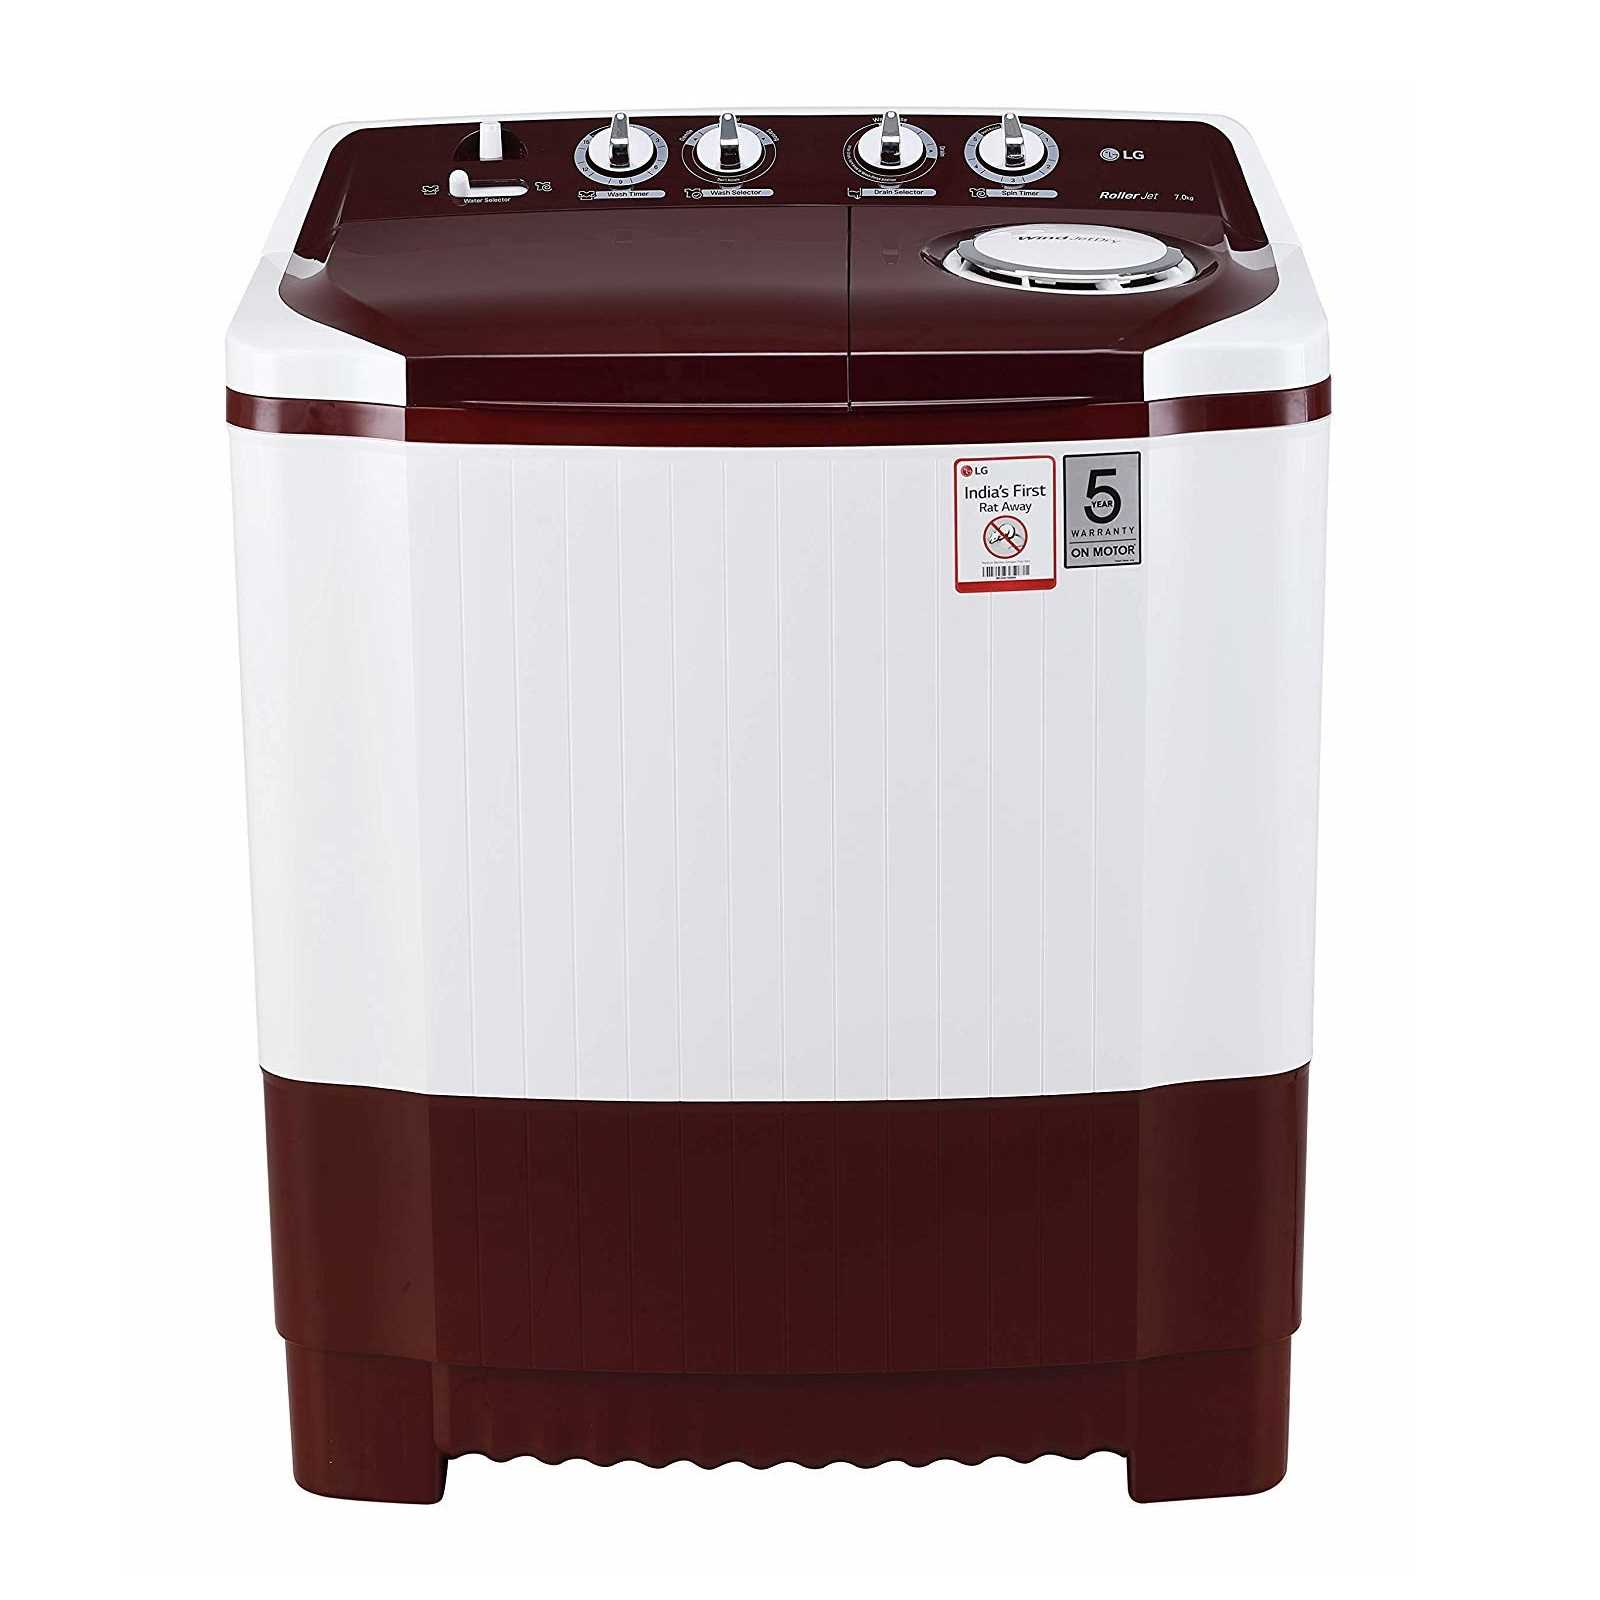 LG P7015SRAY 7 Kg Semi Automatic Top Loading Washing Machine